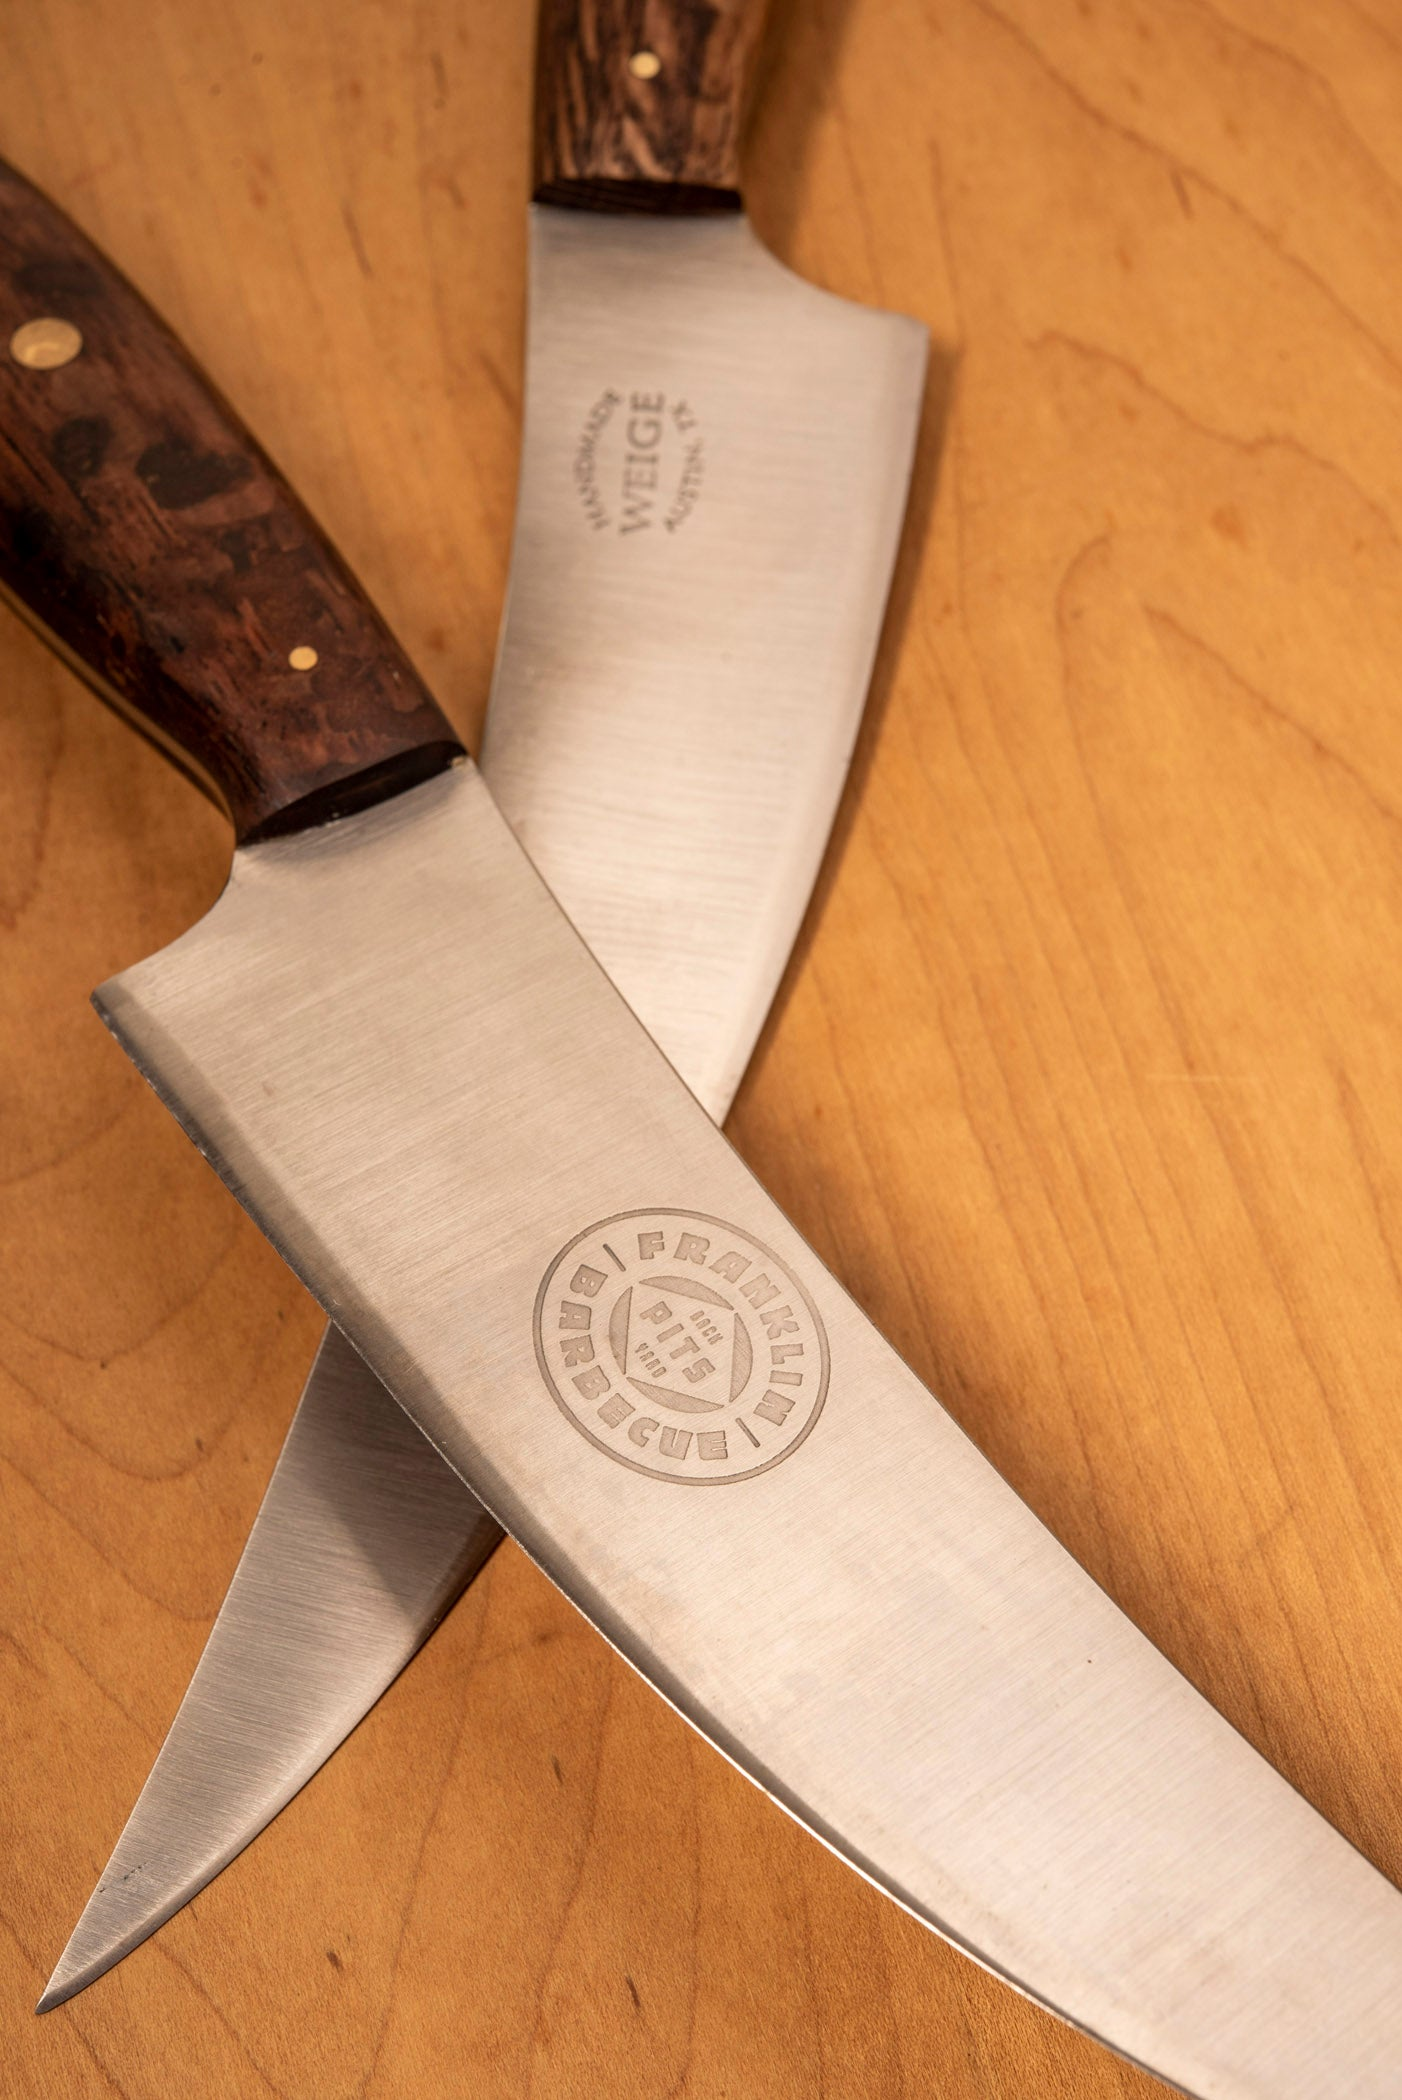 Franklin Barbecue Pits Weige® Trimming Knife